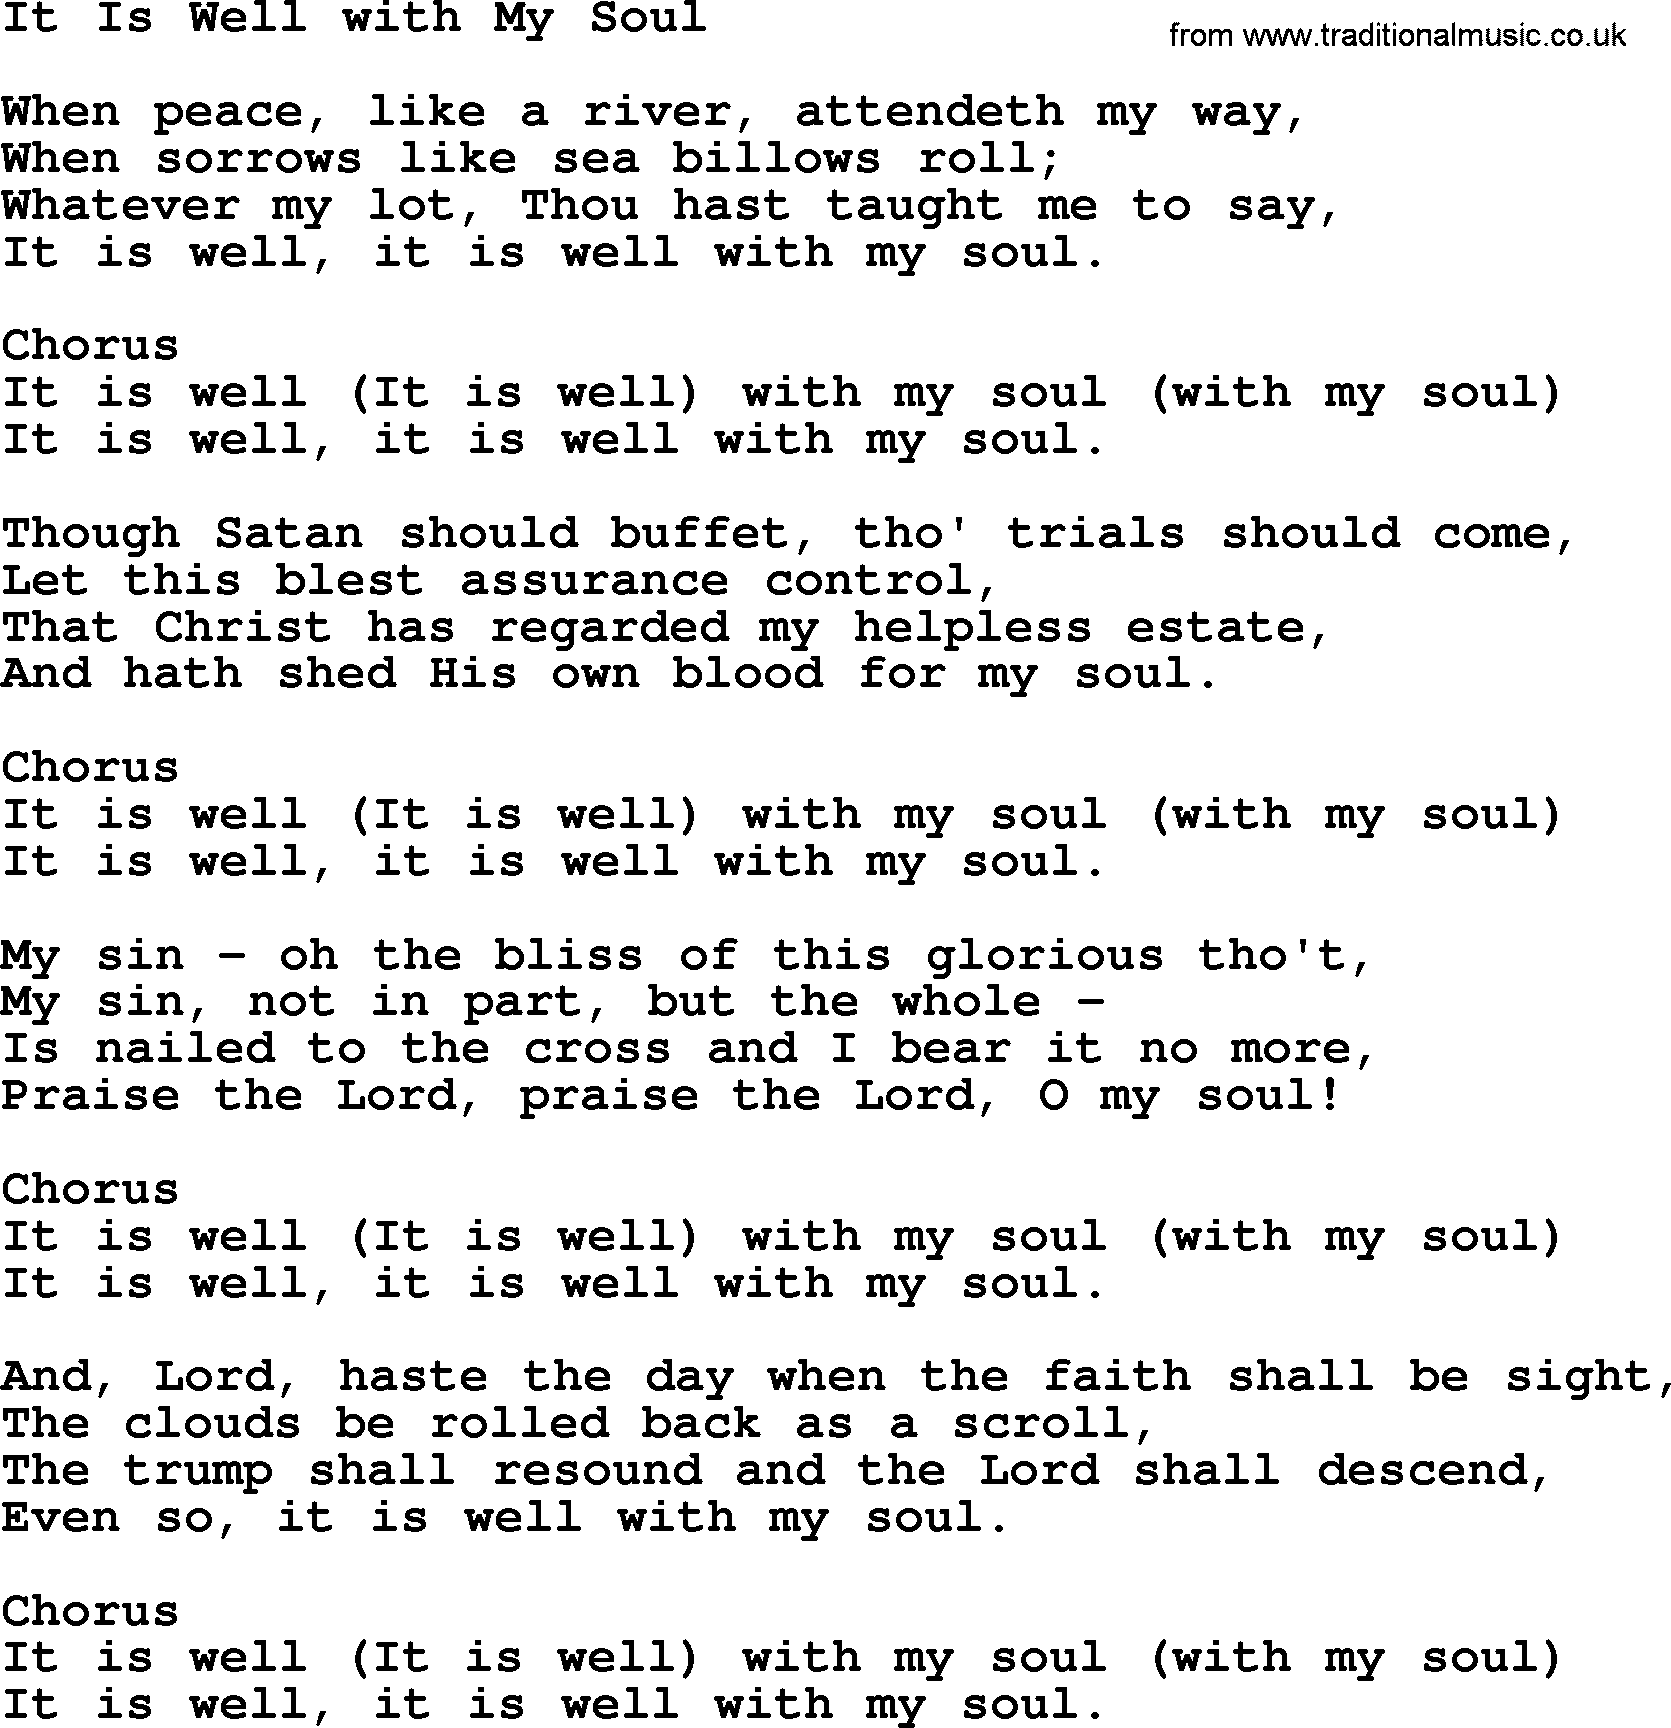 The well christian song